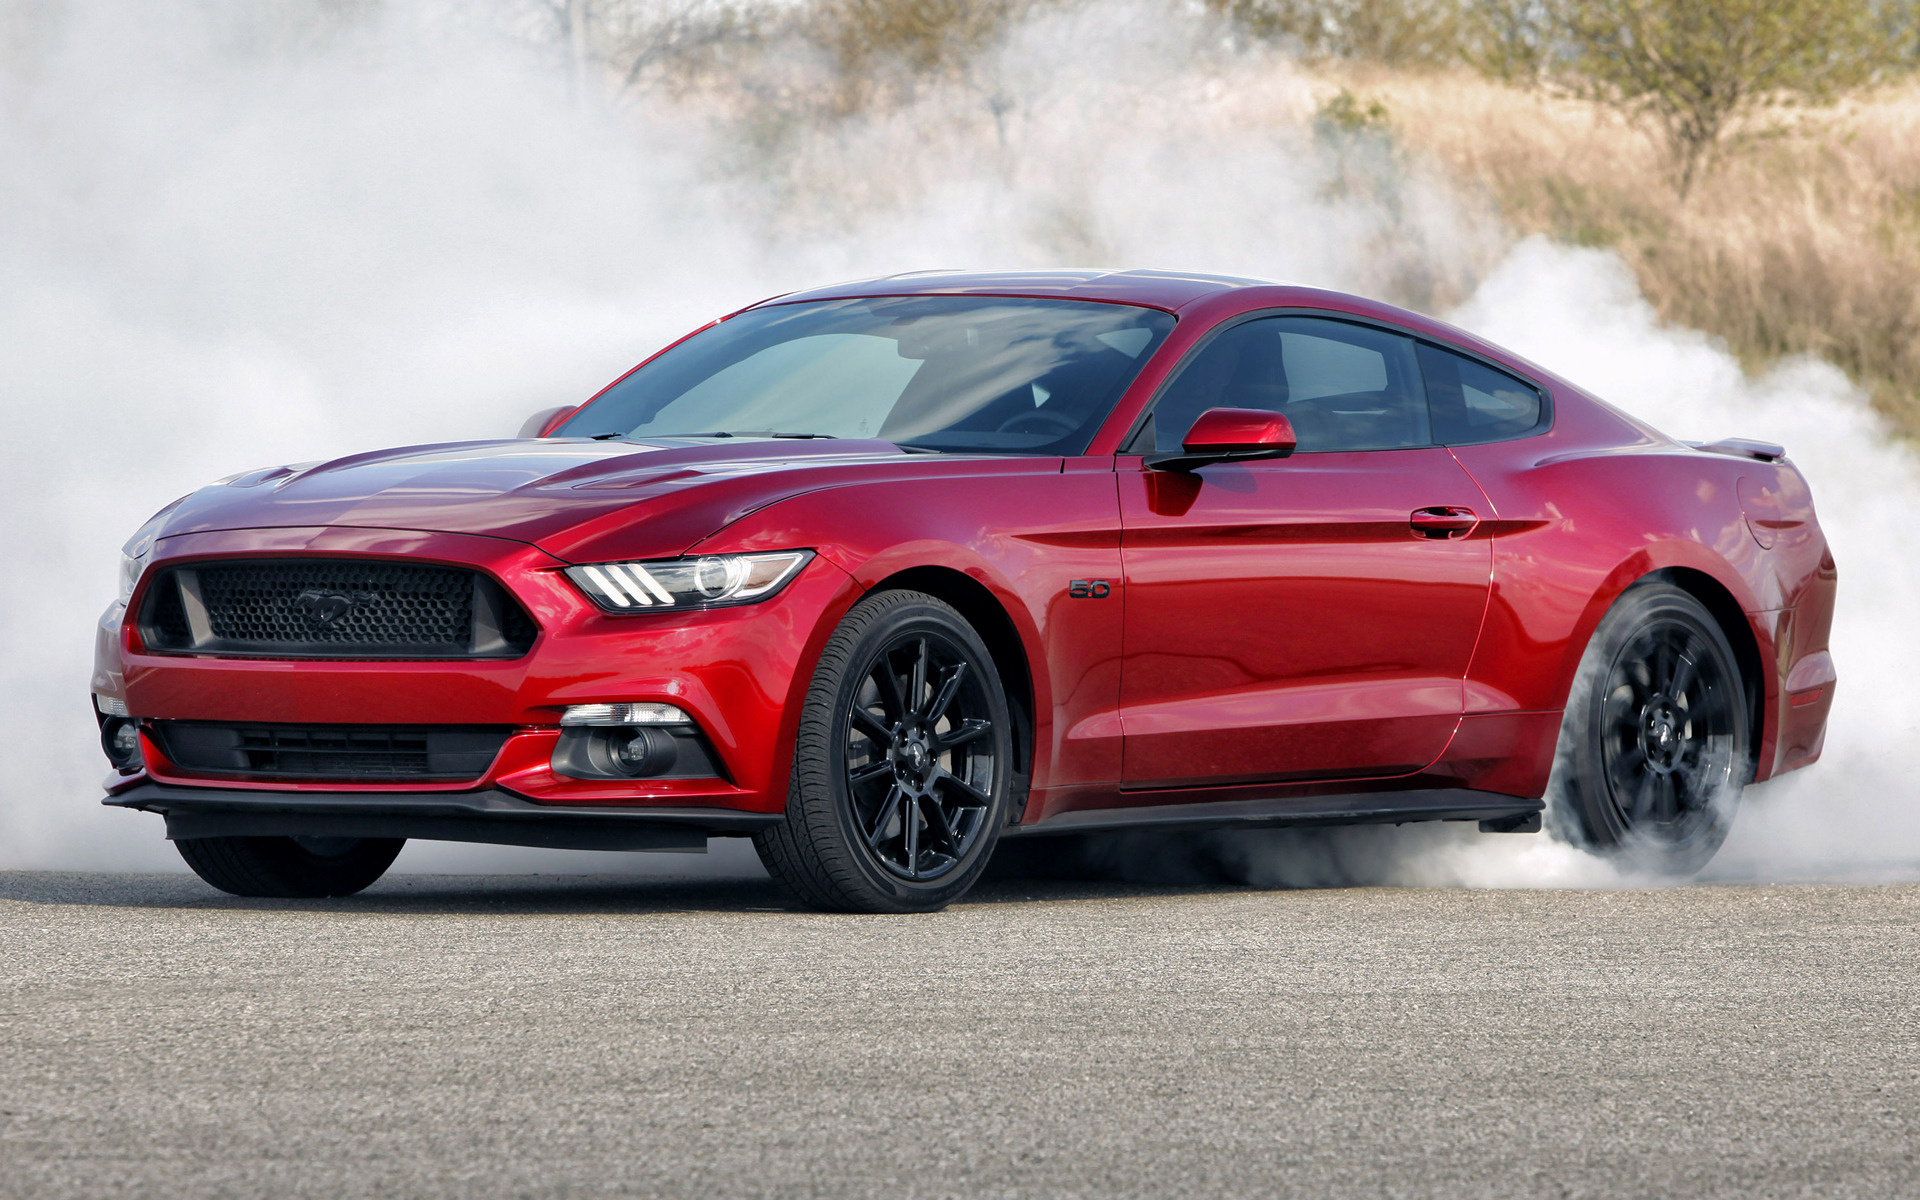 2016 Ford Mustang Gt Black Accent Wallpapers And Hd